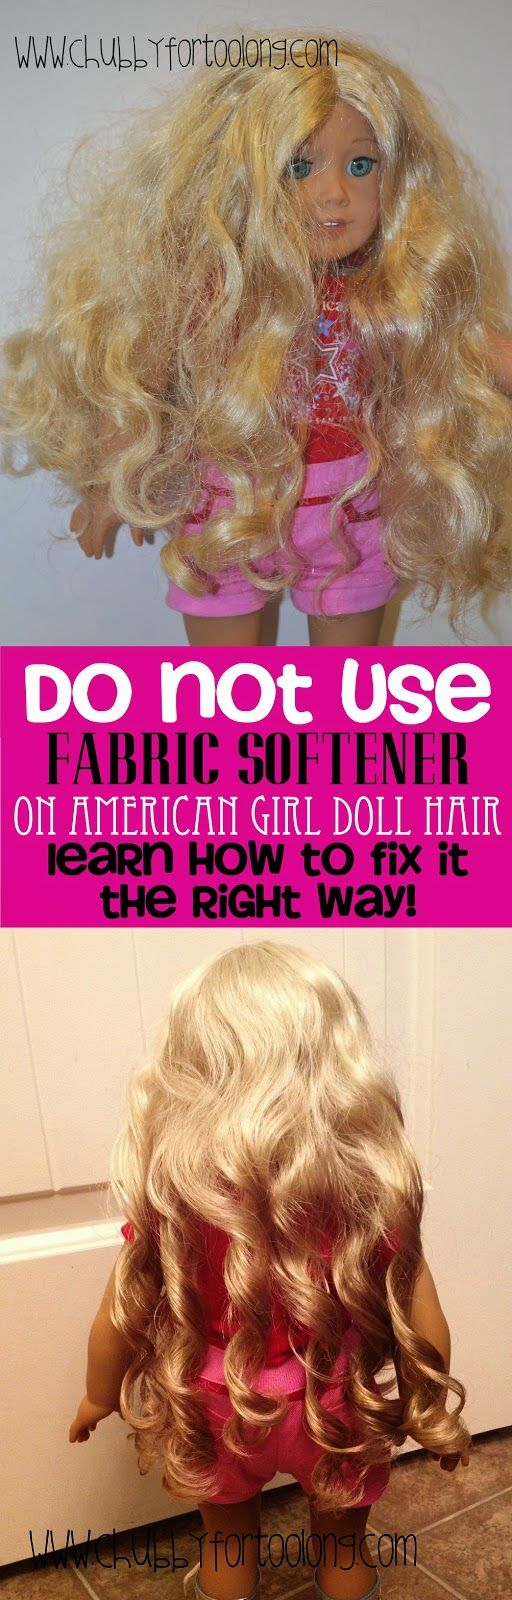 Do Not Use Fabric Softener On American Girl Doll Hair! Learn How To Fix  Curly